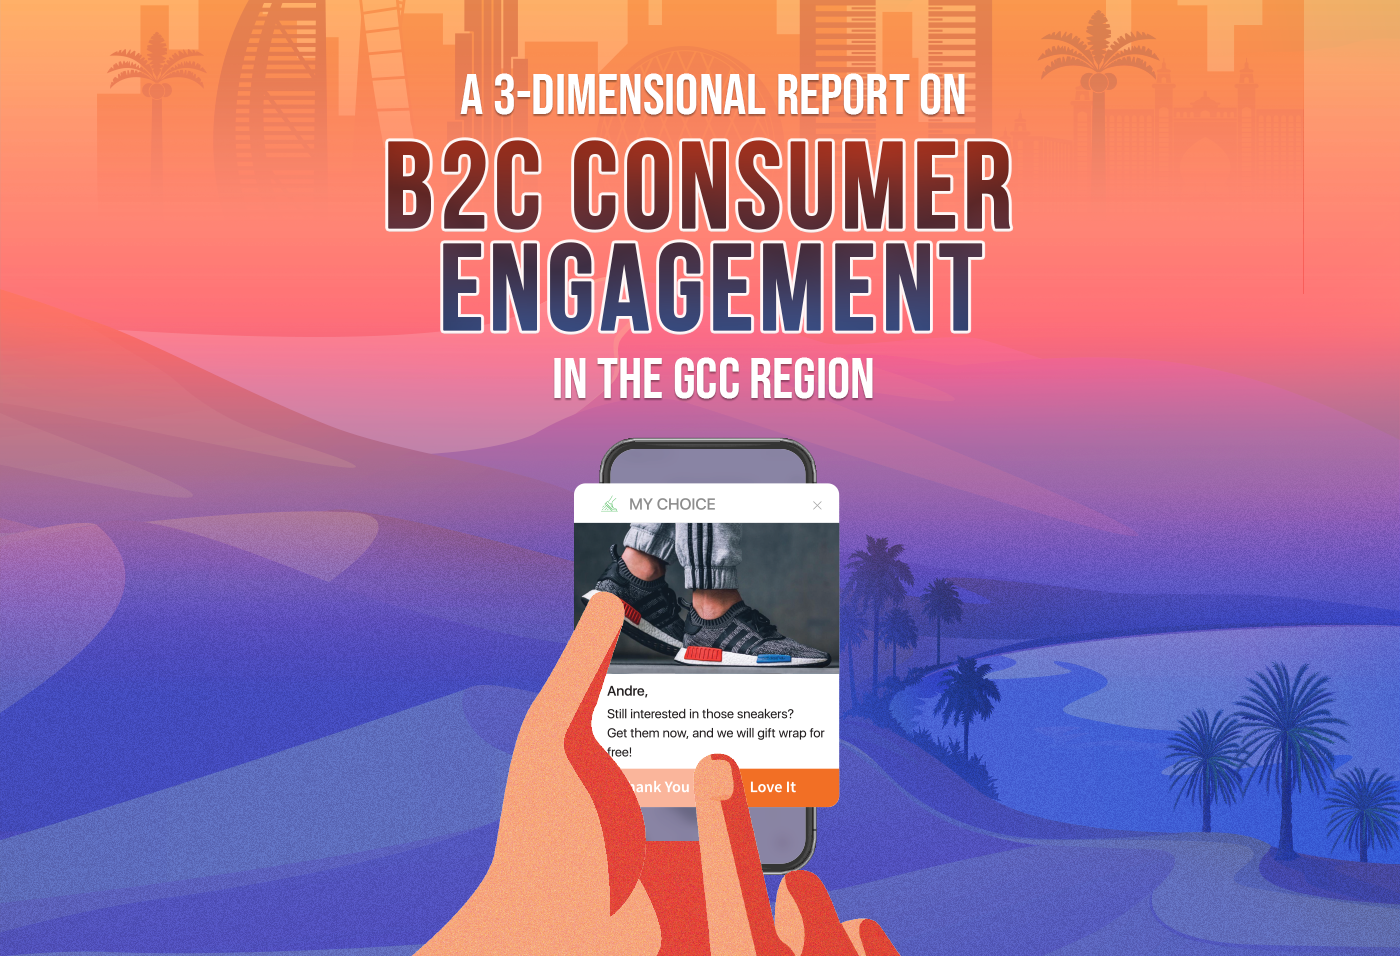 A 3-Dimensional Report On B2C Consumer Engagement In The GCC Region